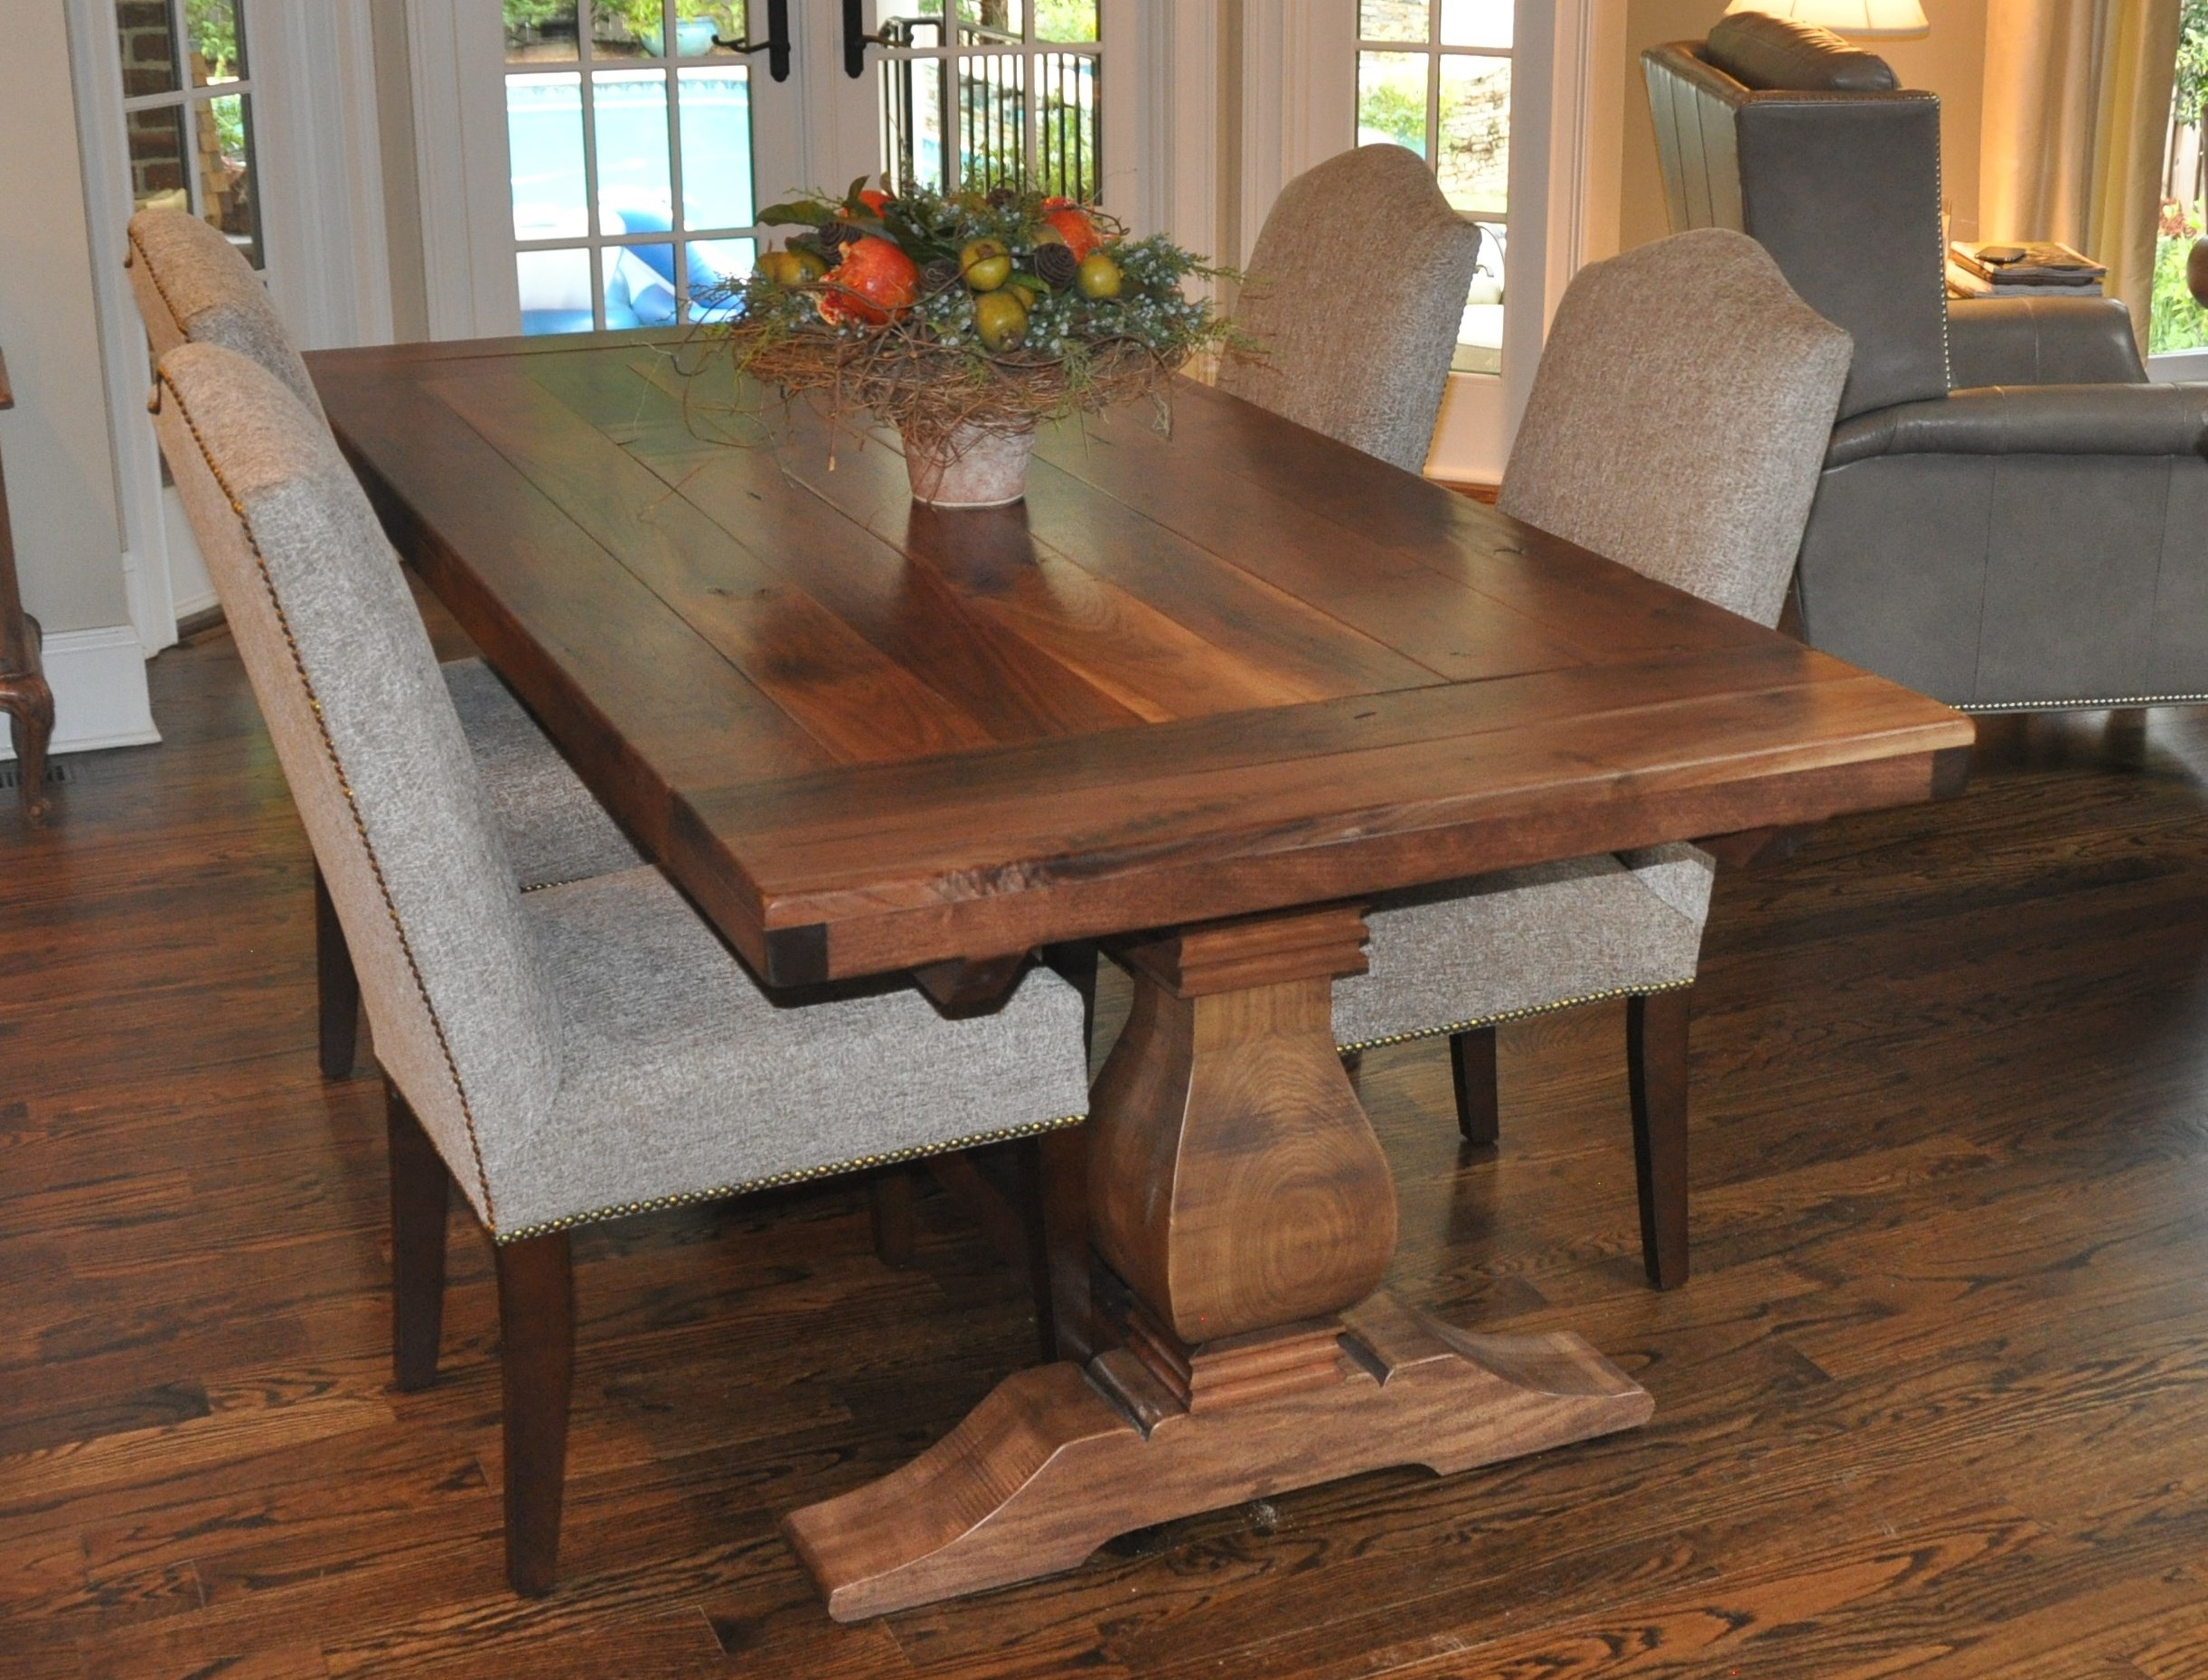 Rustic Weston Trestle Farmhouse Table | Atlanta GA Denver